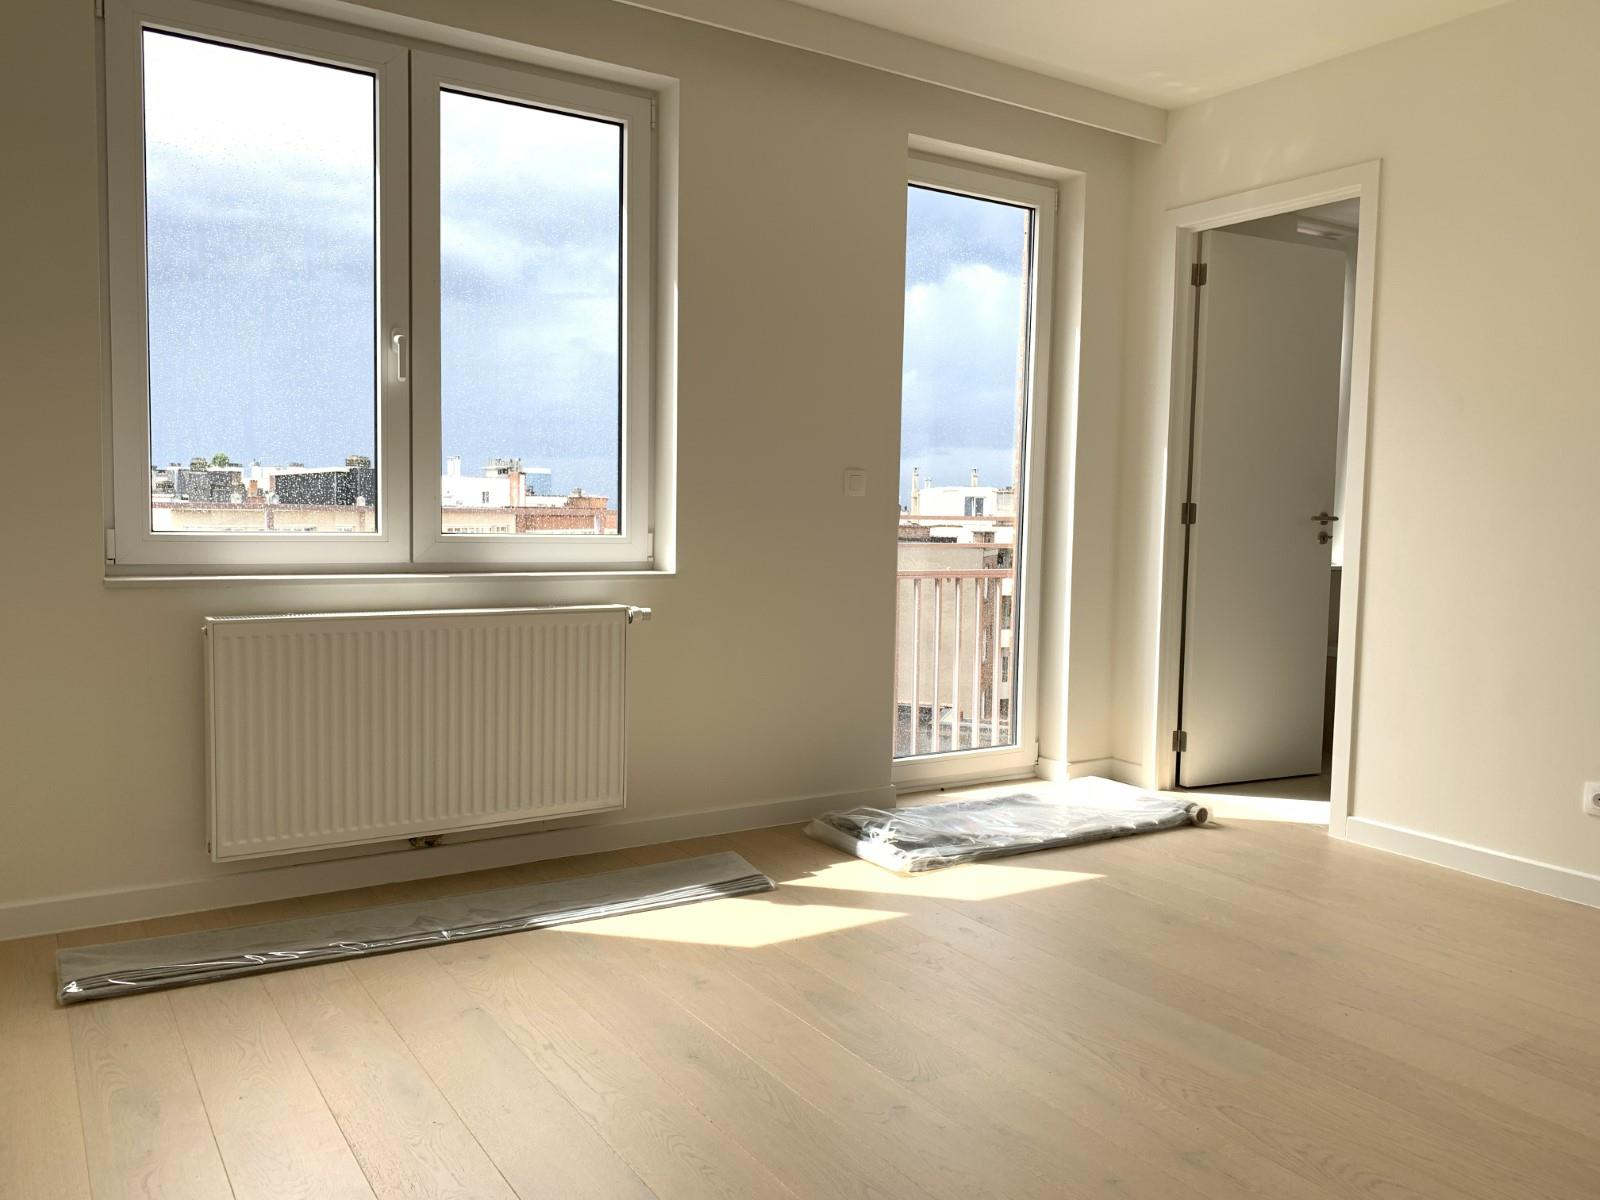 Appartement exceptionnel - Schaerbeek - #3964914-18